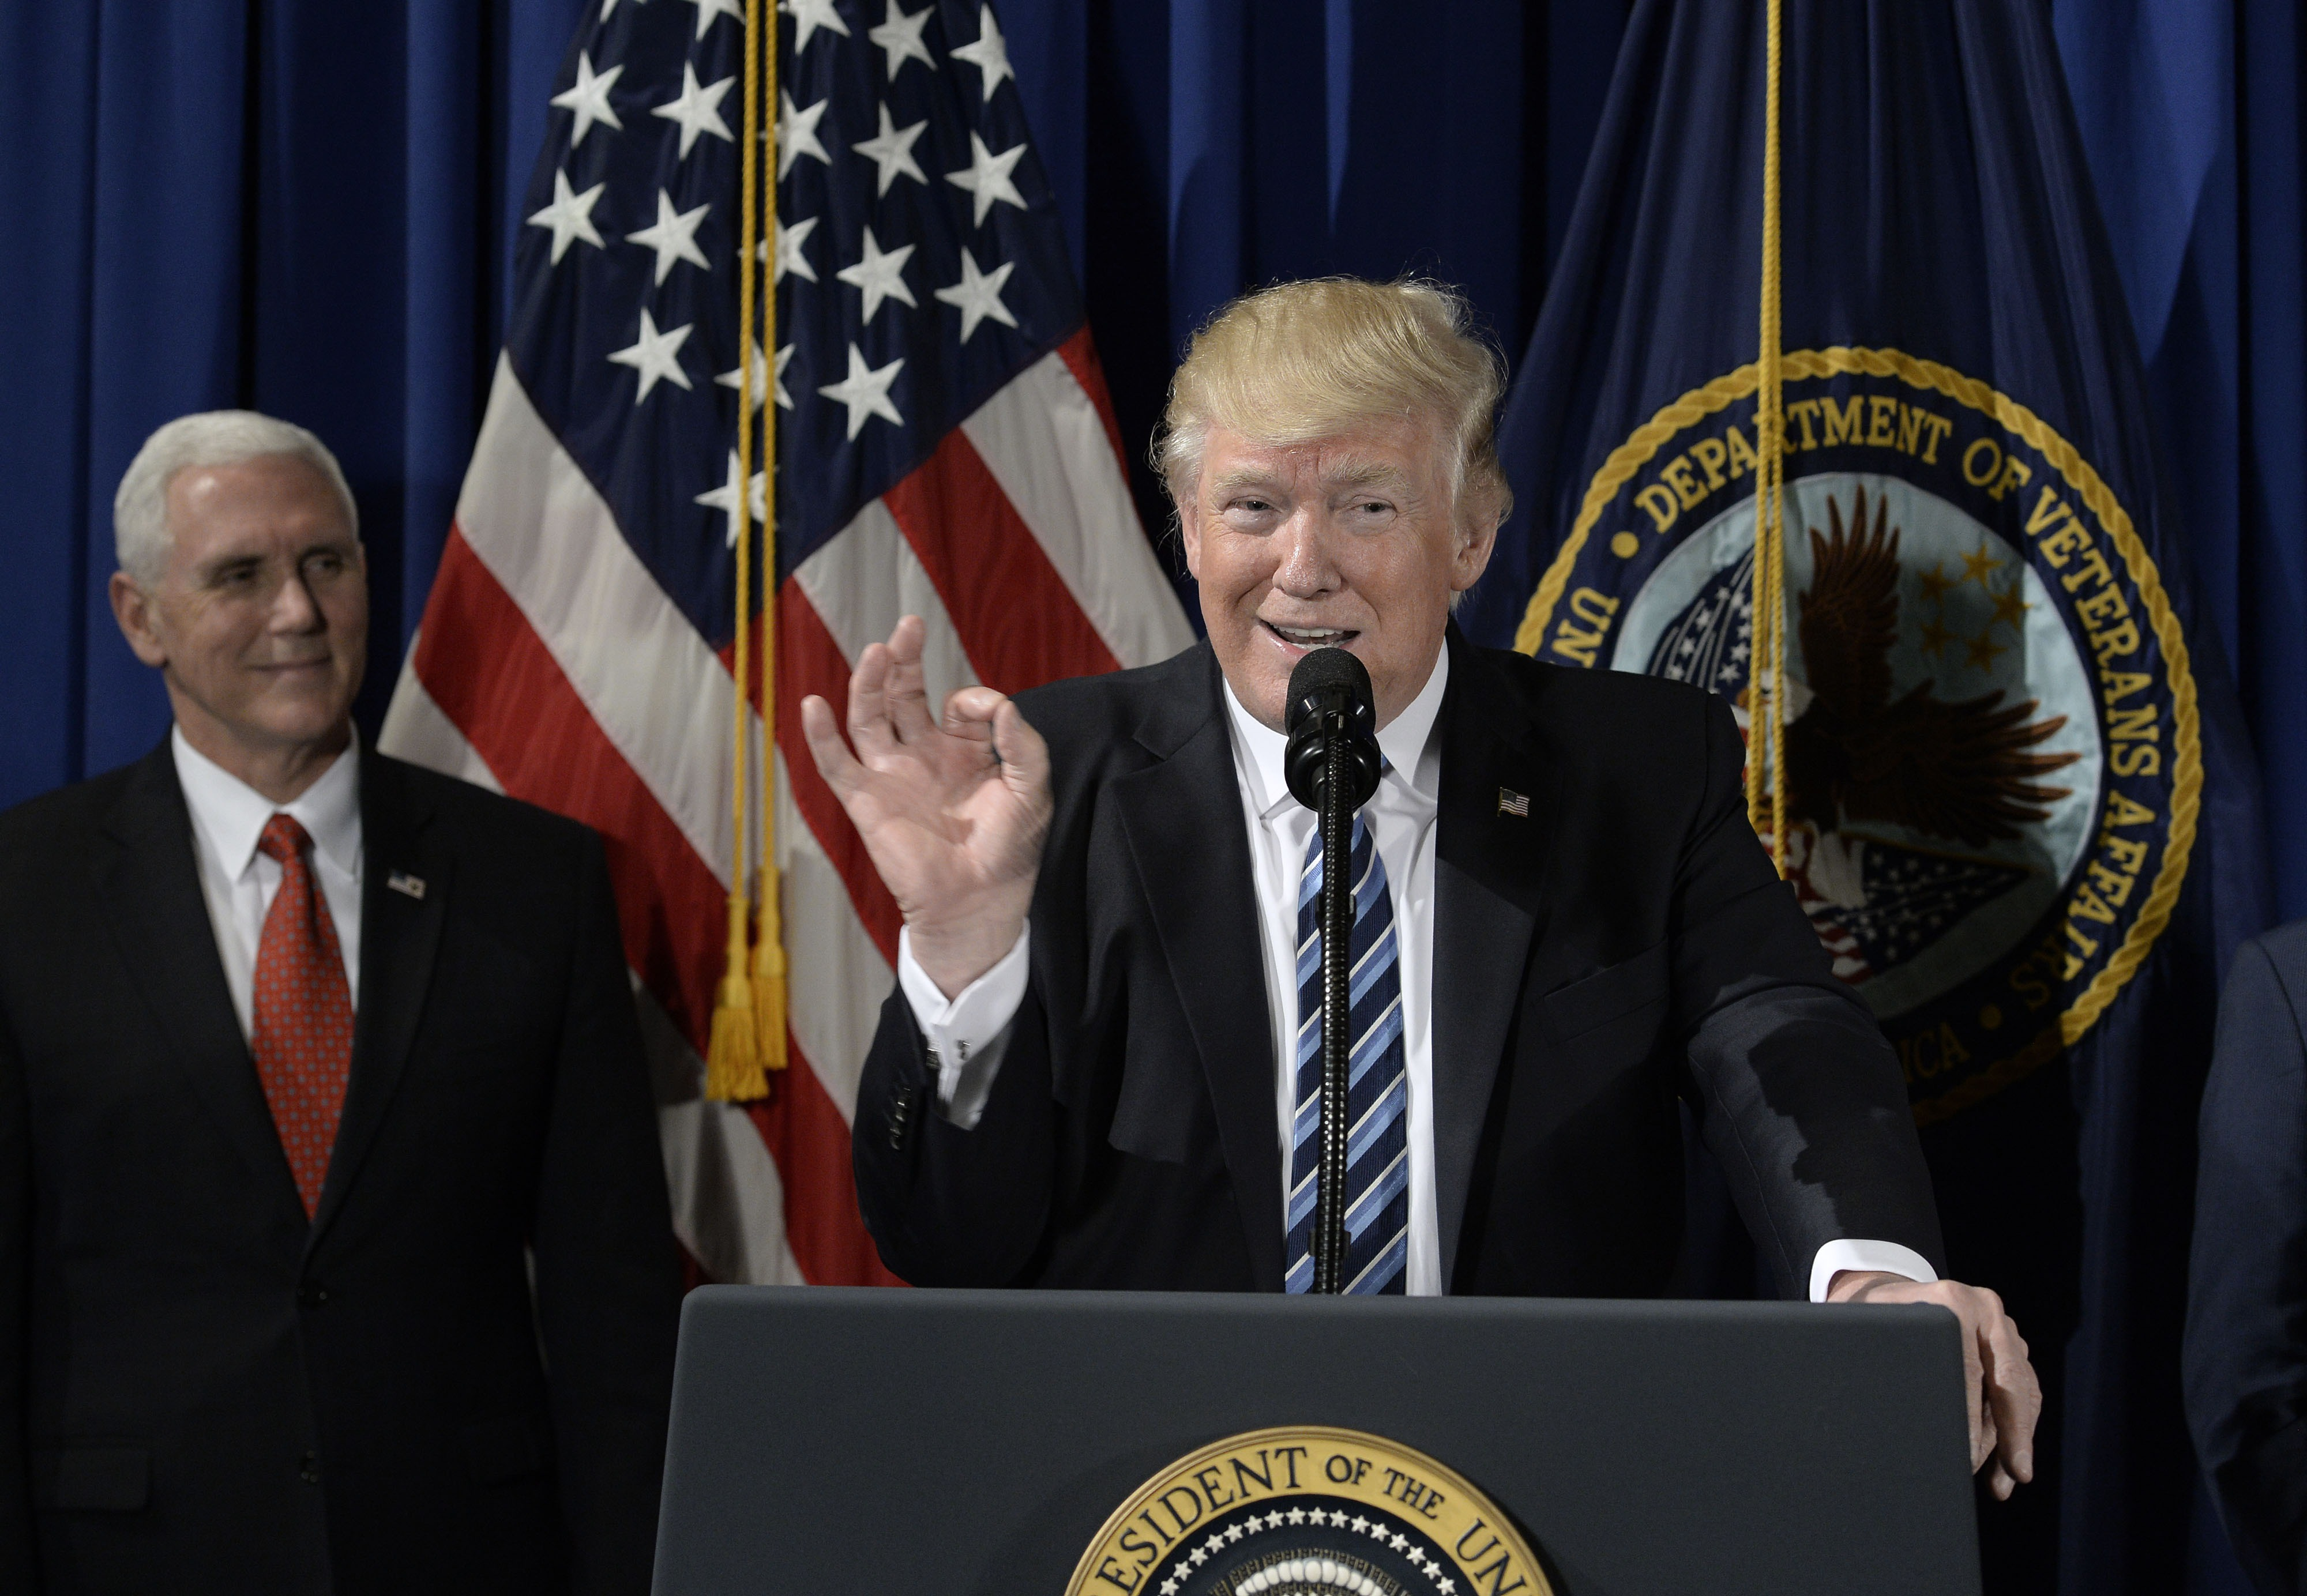 President Trump speaks at the Department of Veterans Affairs before signing an Executive Order on April 27, 2017 in Washington, DC.